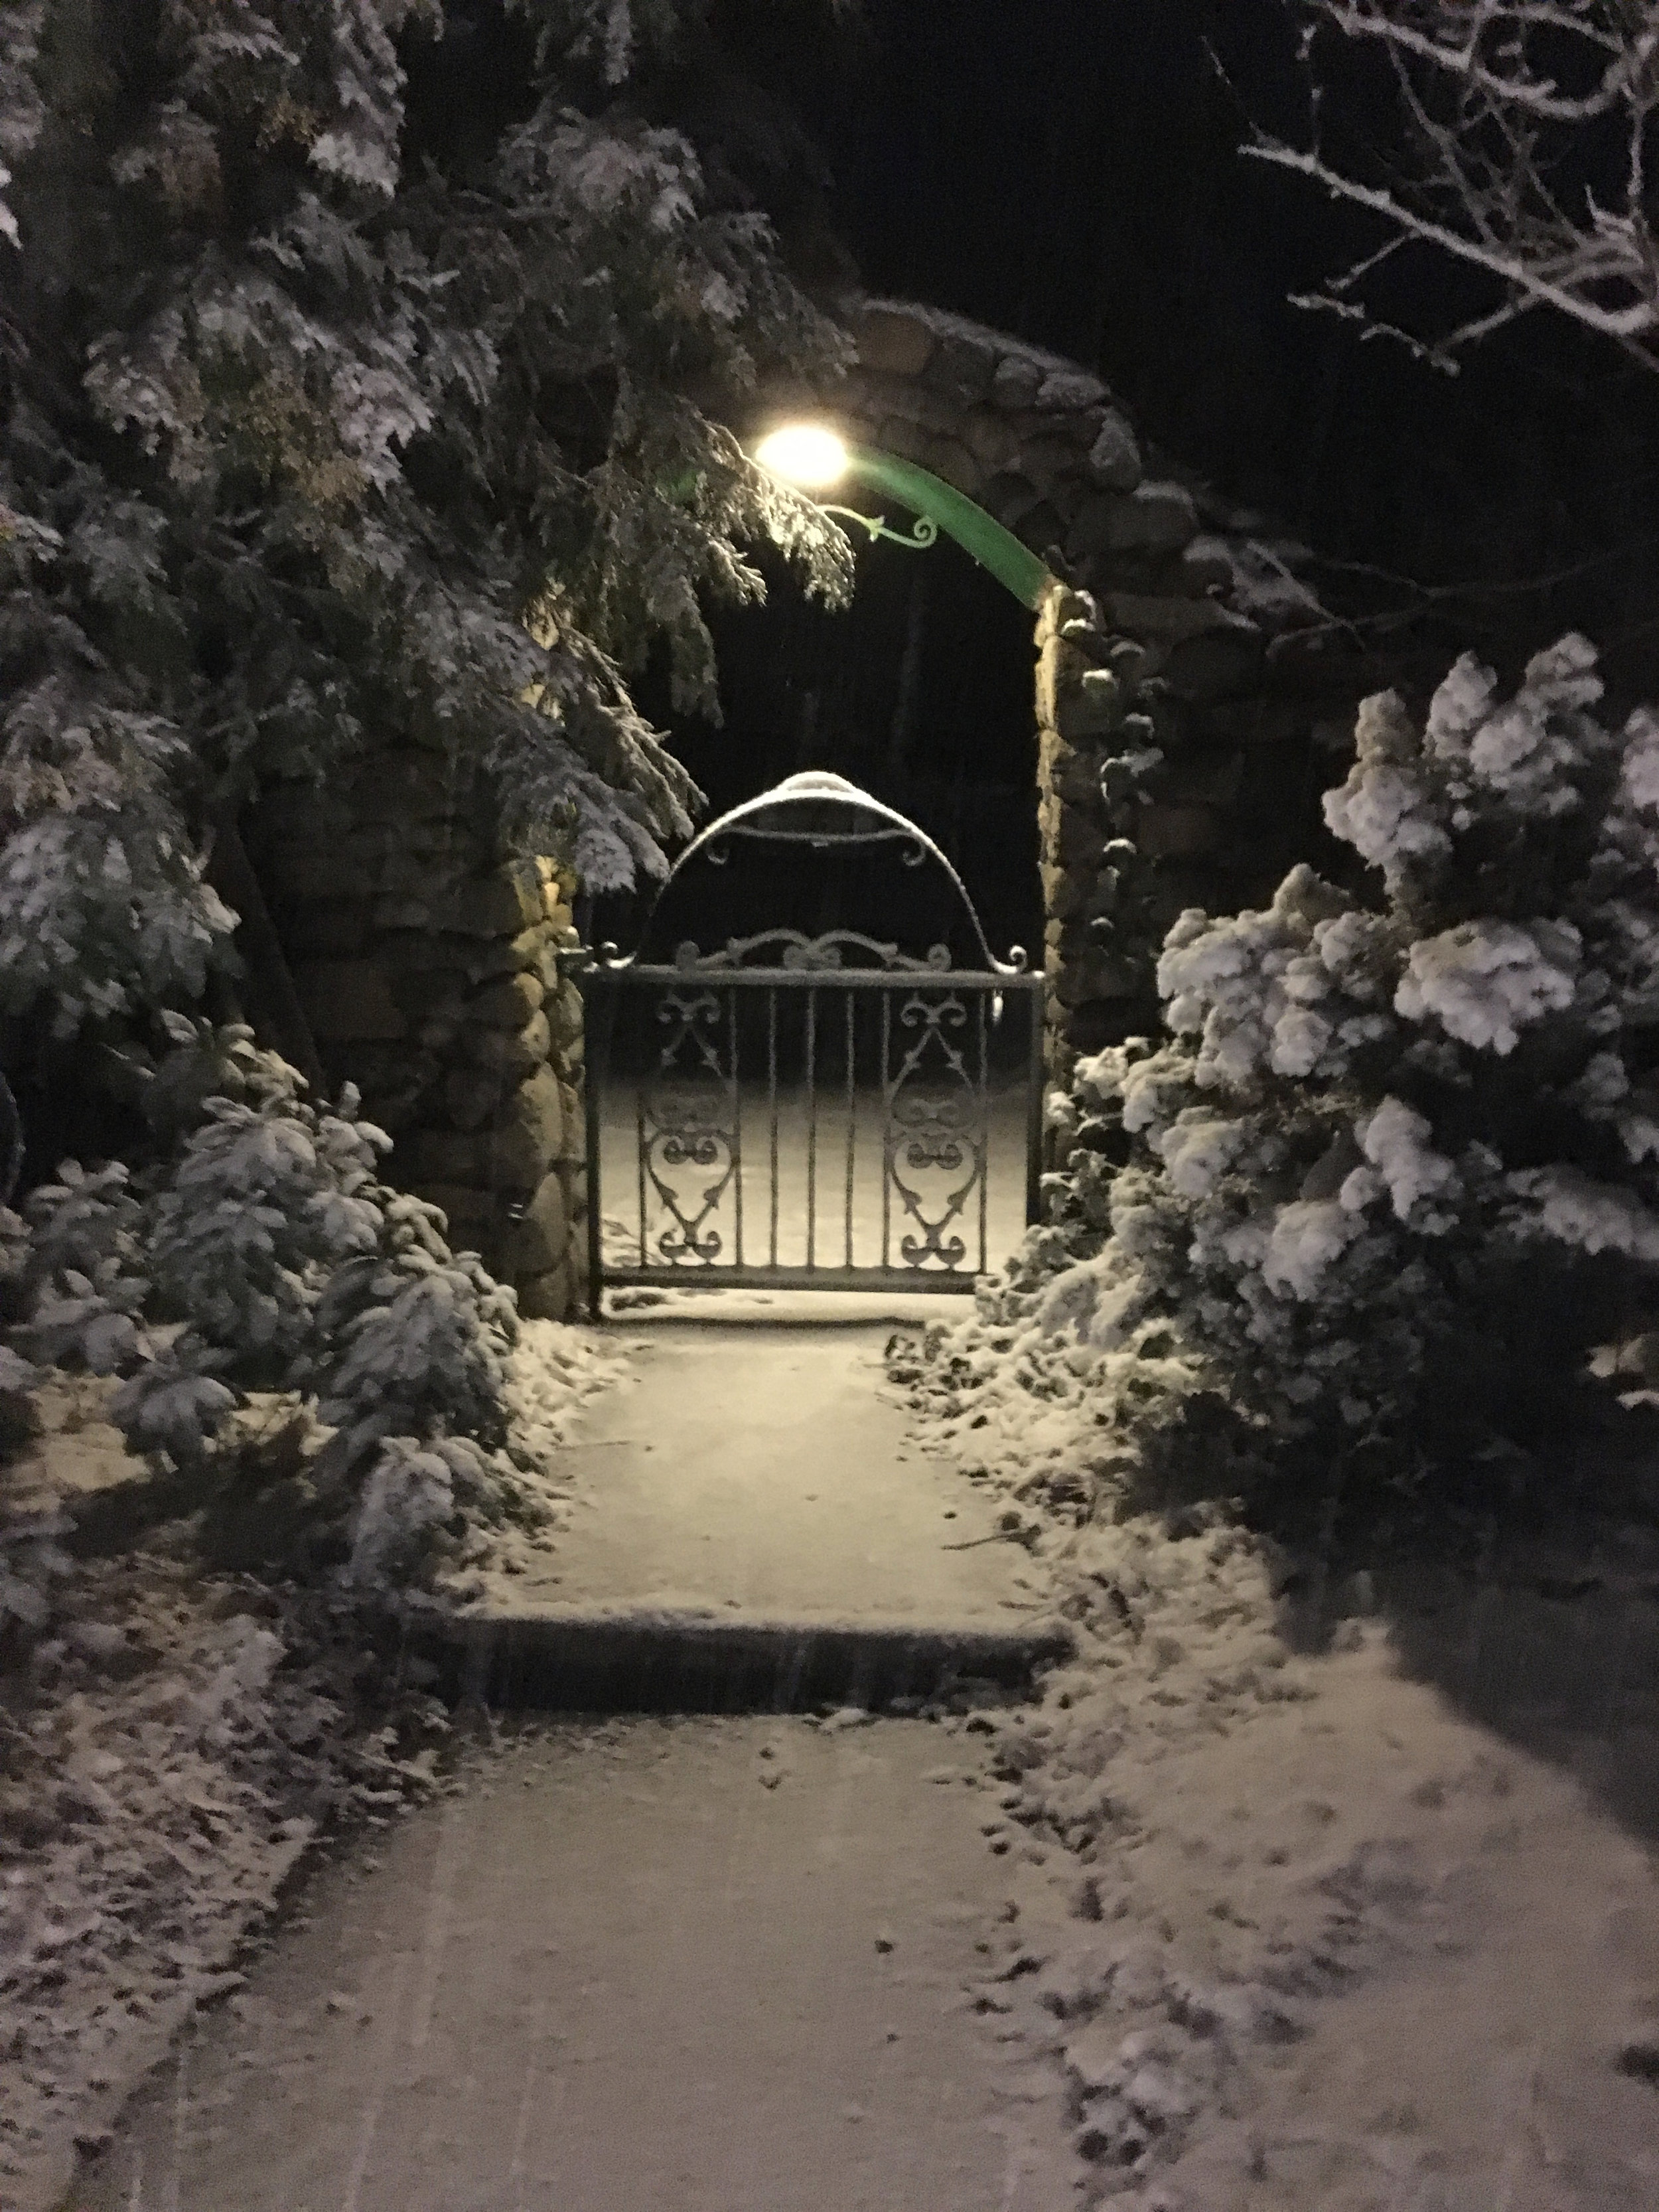 Walk Way Over Arch in Snow